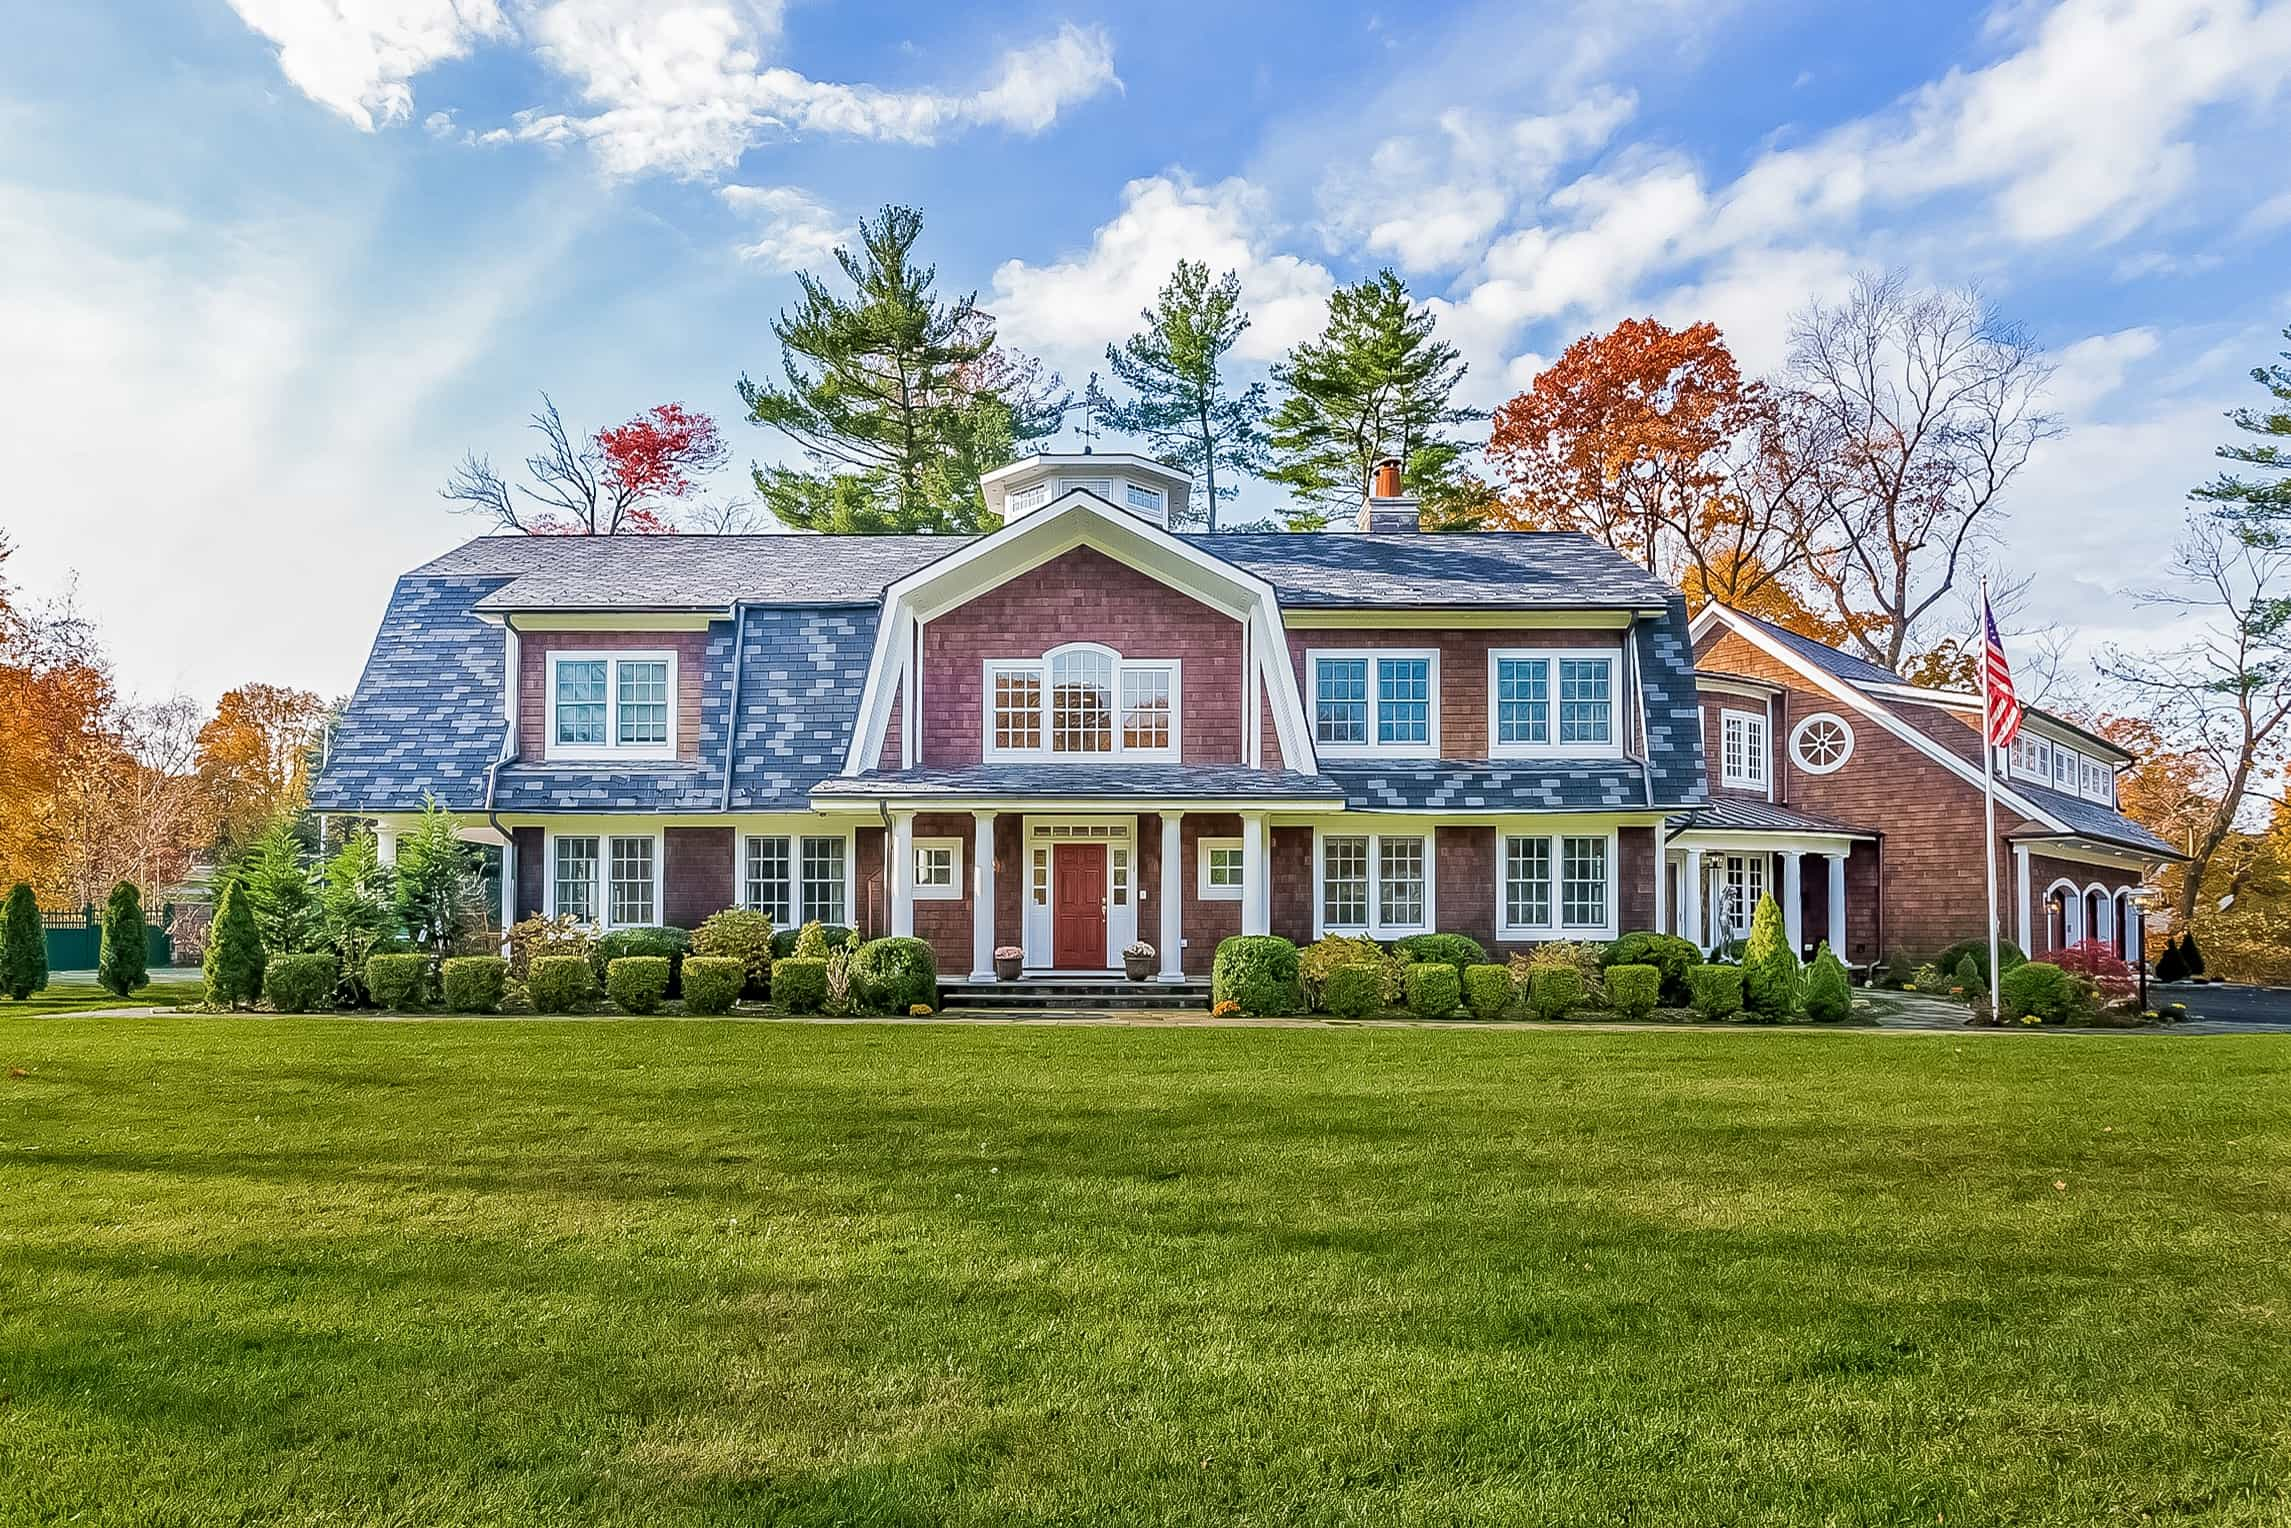 Featured Image of Classic Cape Cod Home With Wood Shingle Exterior